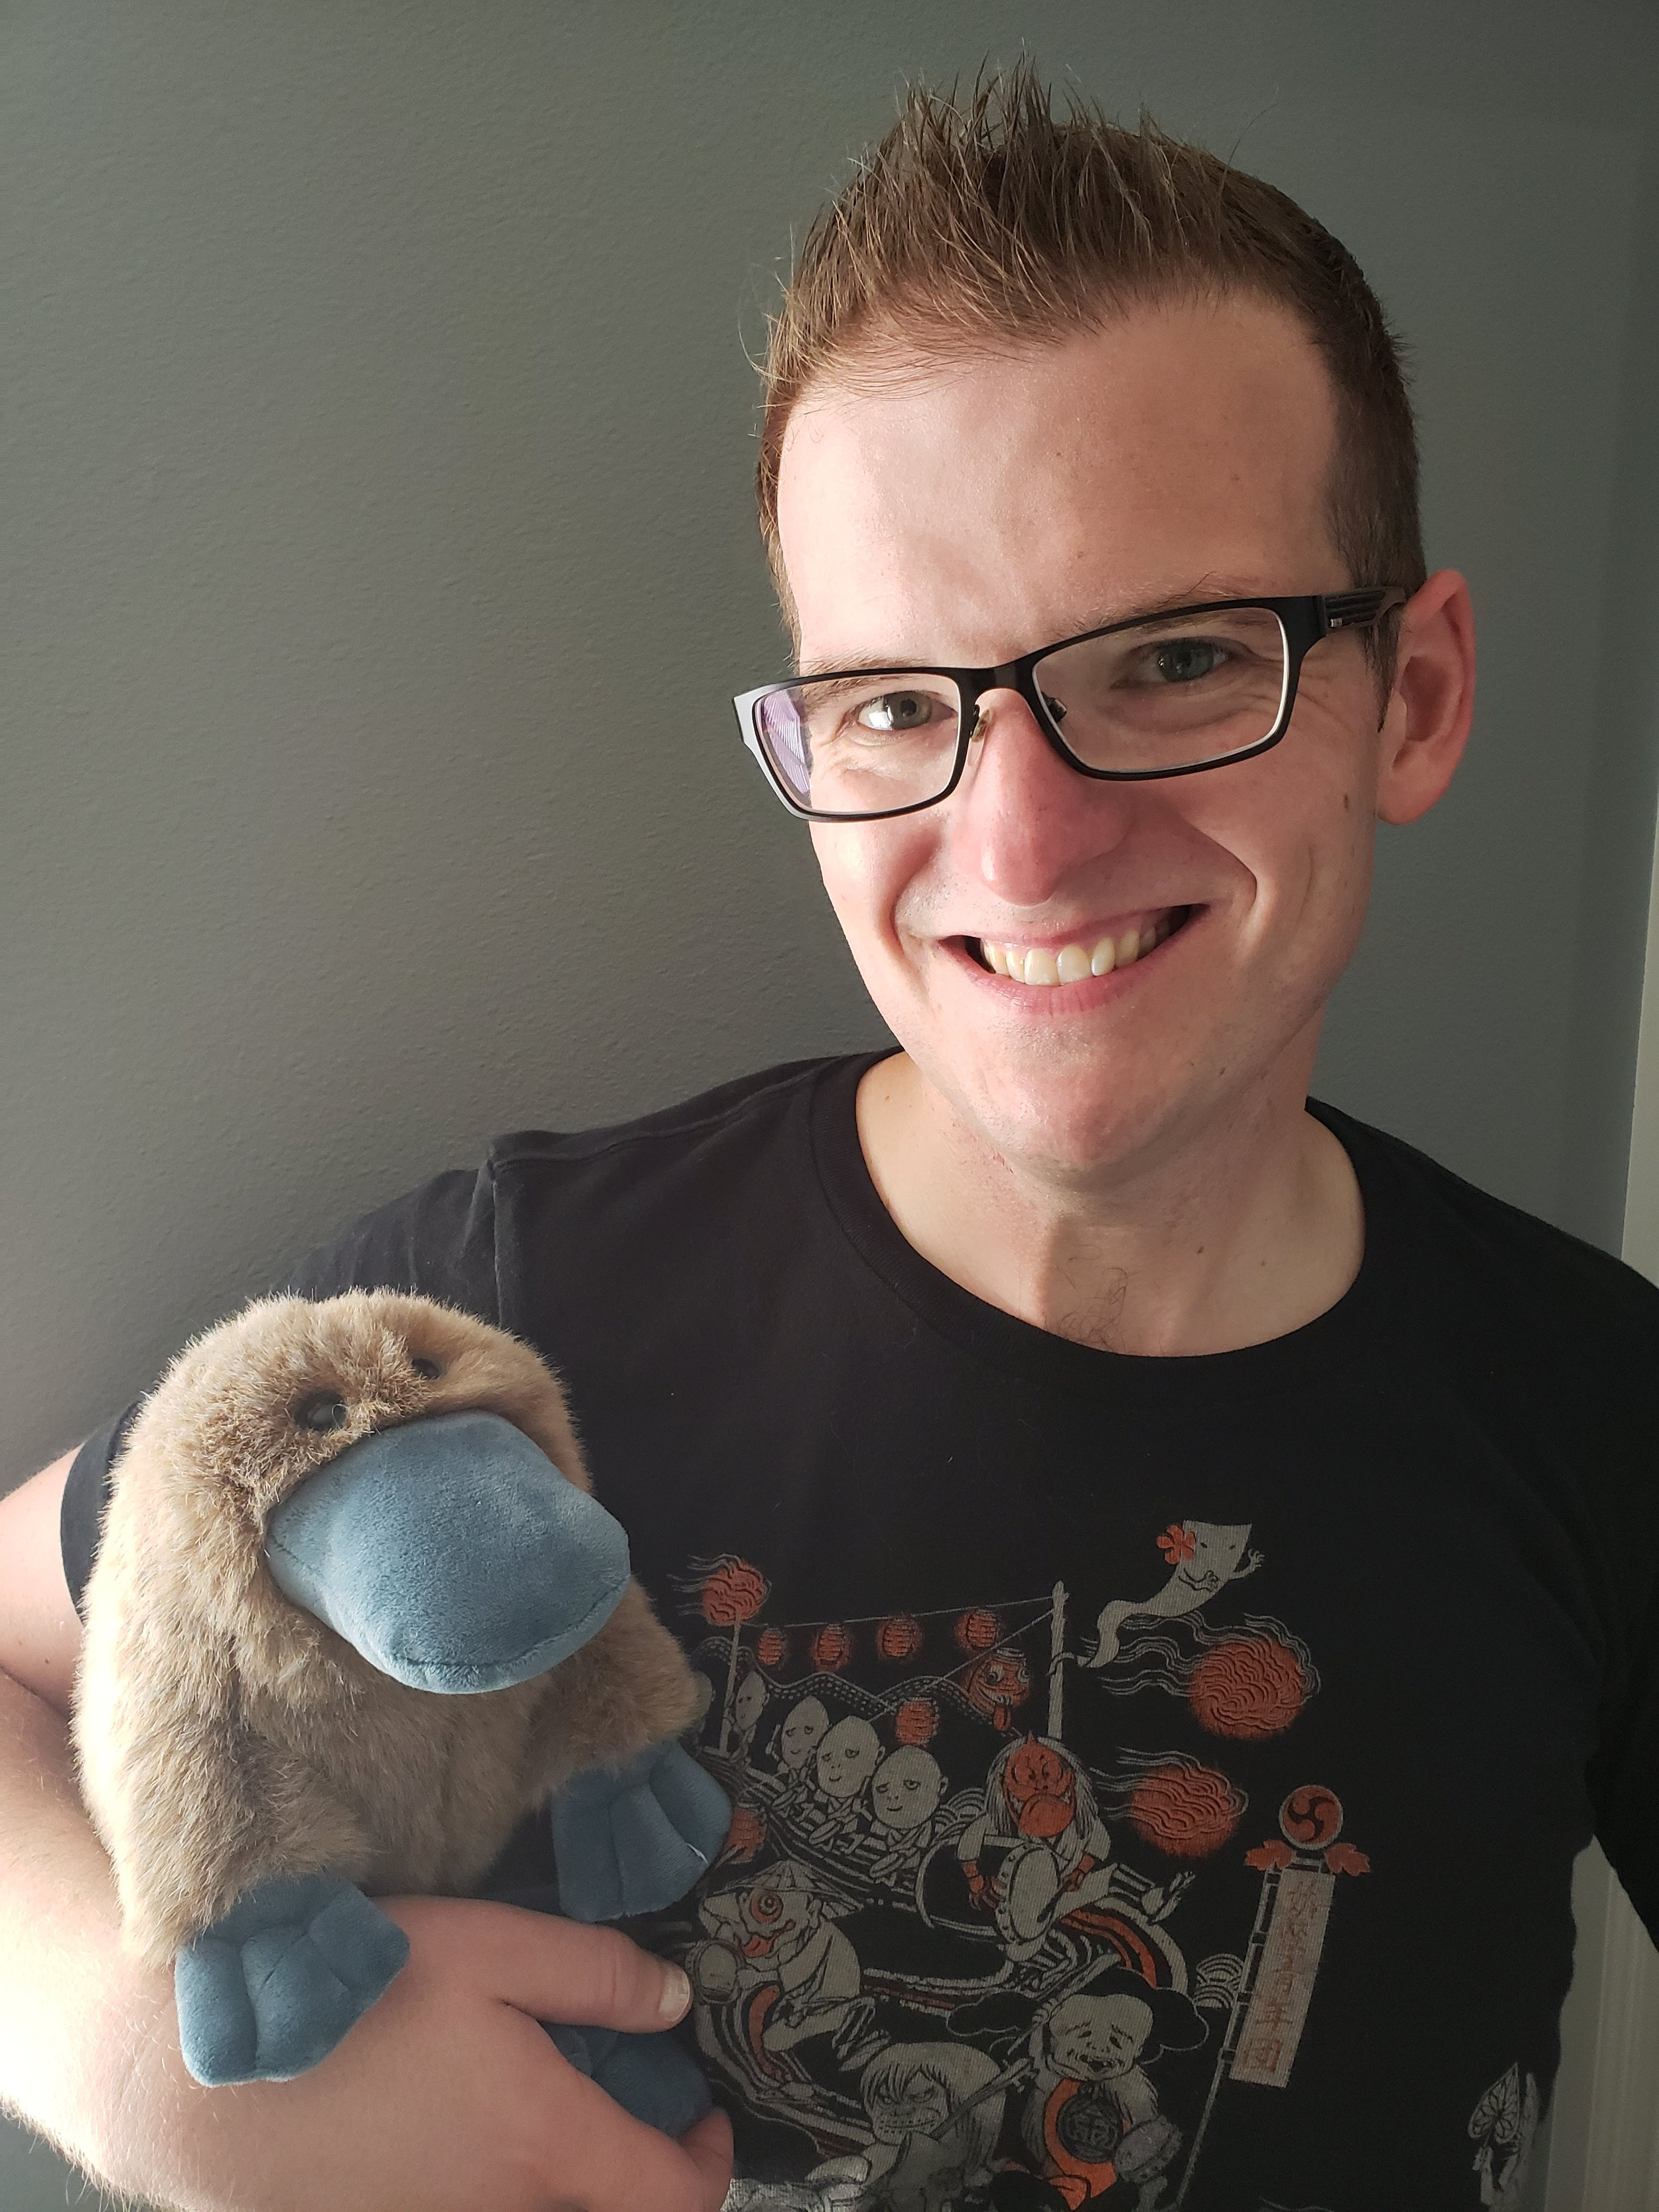 Ryan with his stuffed platypus, Webber, who plays a very important role in the novel,  Carnival of Heaven .